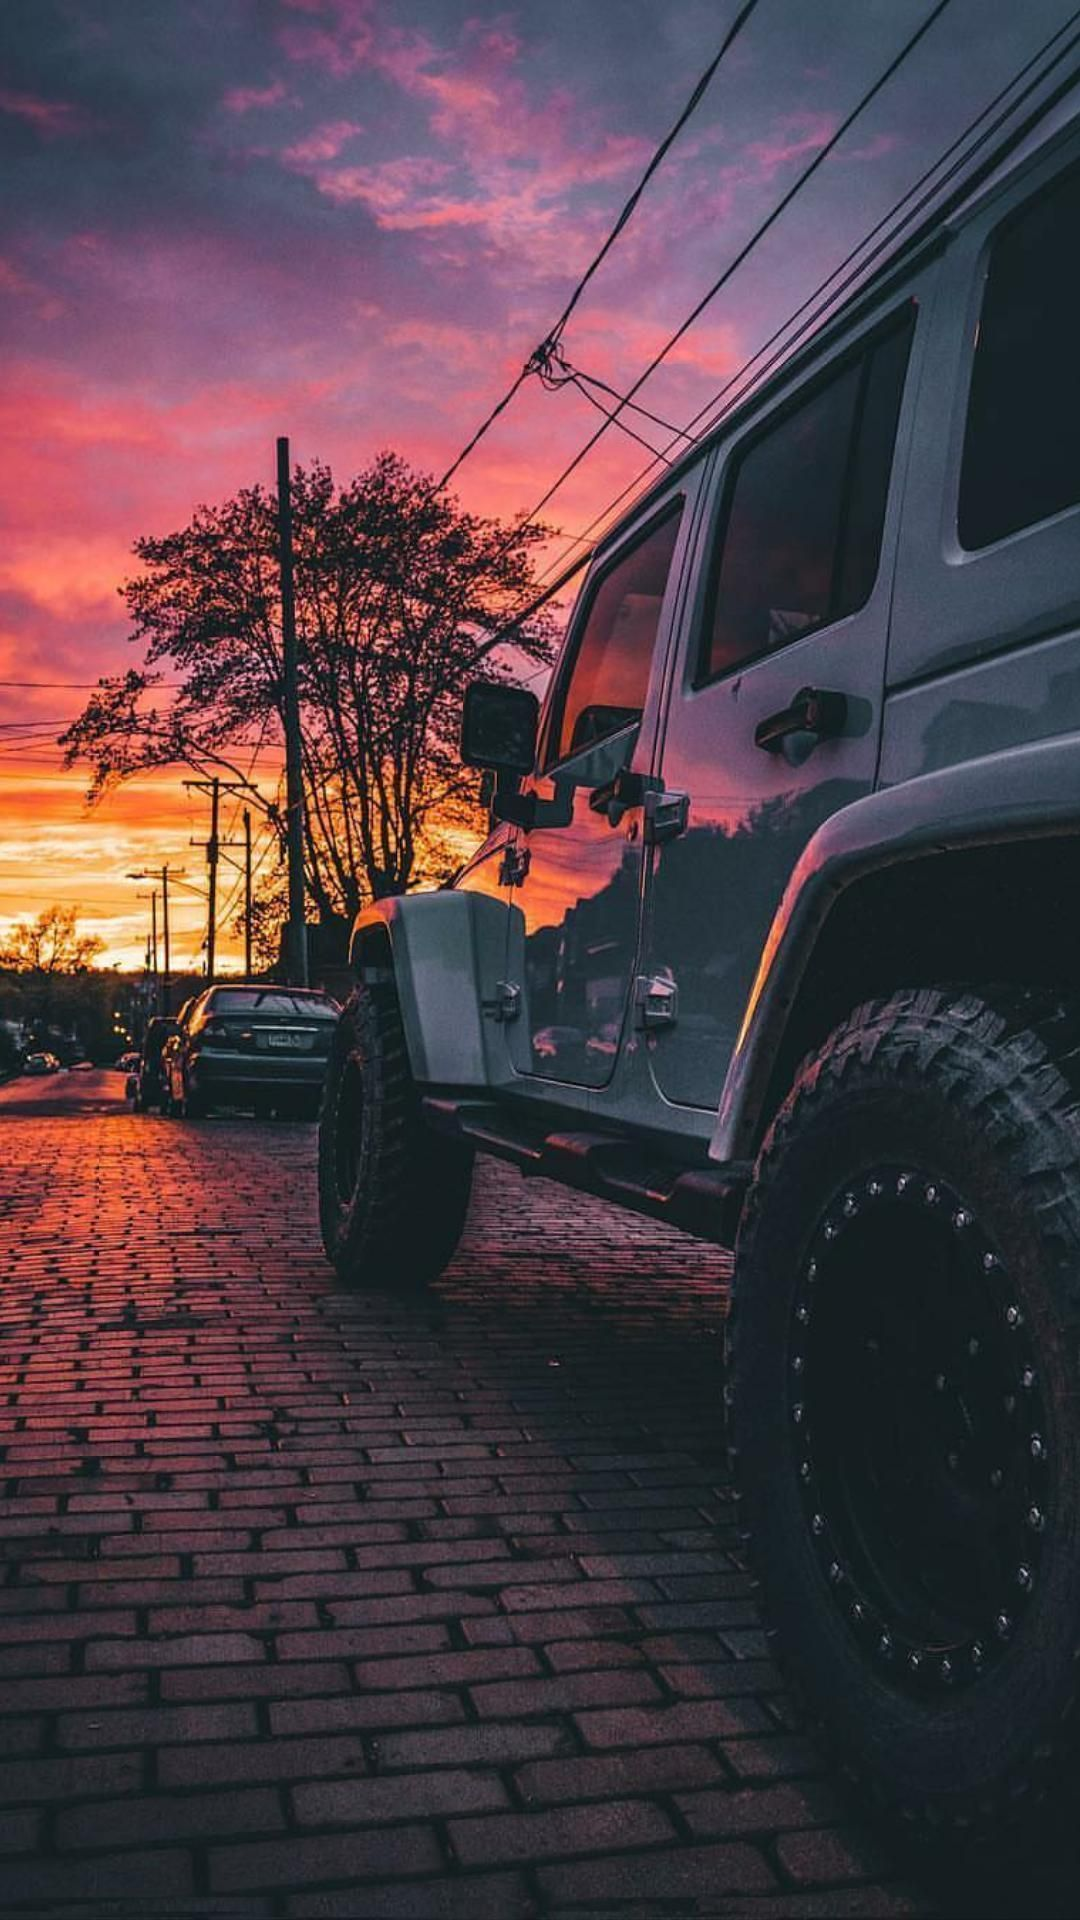 A Nice Sunrise With A Clean White Jeep Jeep Wallpaper Dream Cars Jeep Jeep Photos